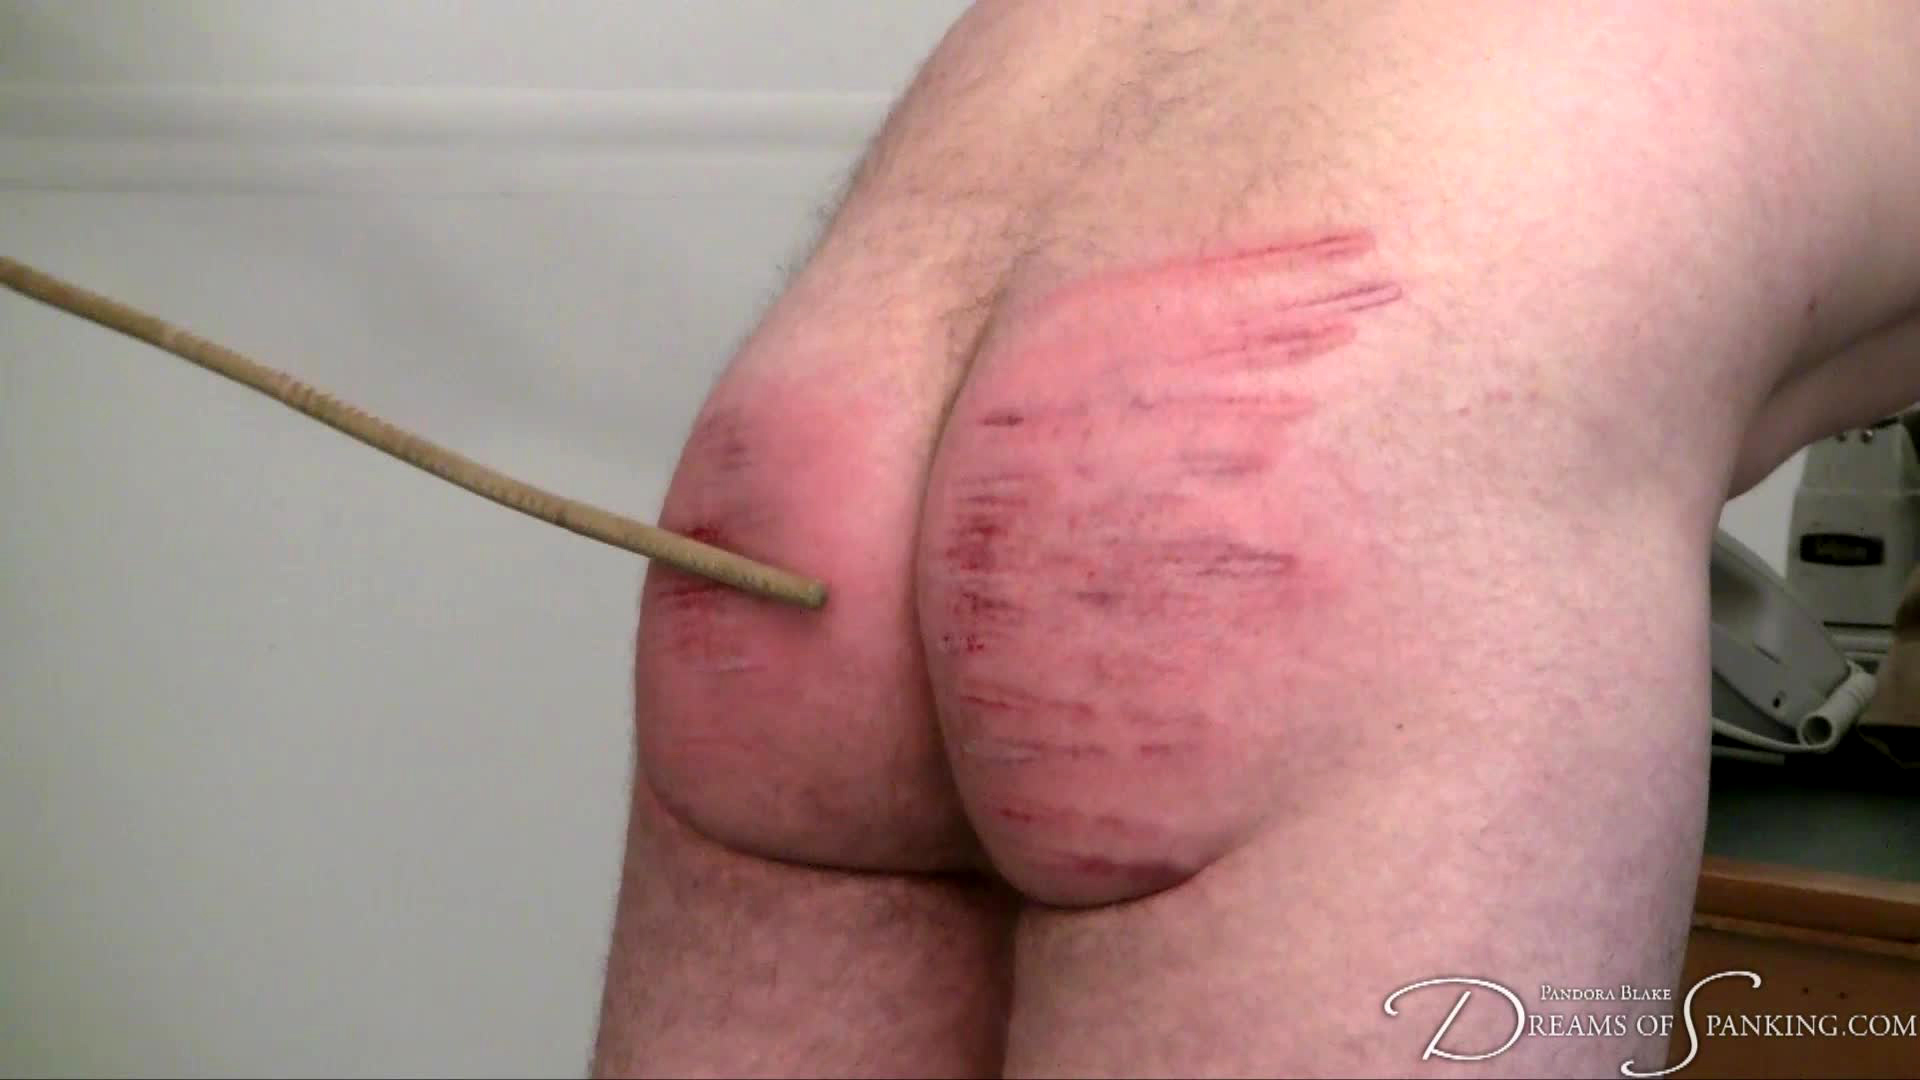 Severe judicial CFNM caning at Dreams of Spanking